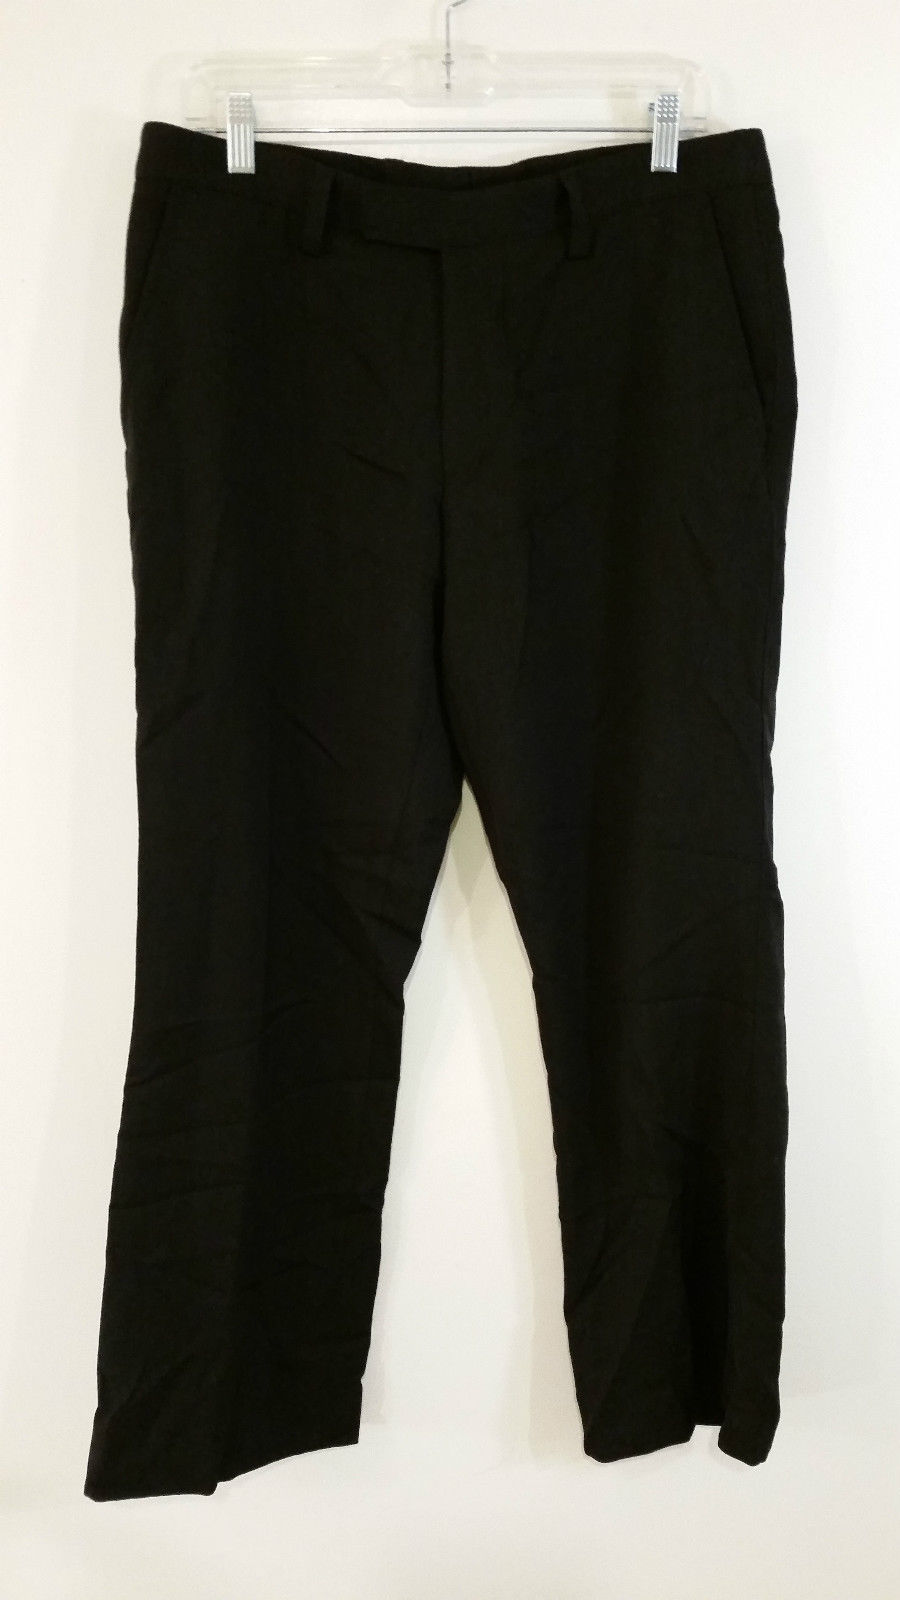 Hugo Boss Black Flat Front Dress Pants 100 Percent Wool Excellent Condition